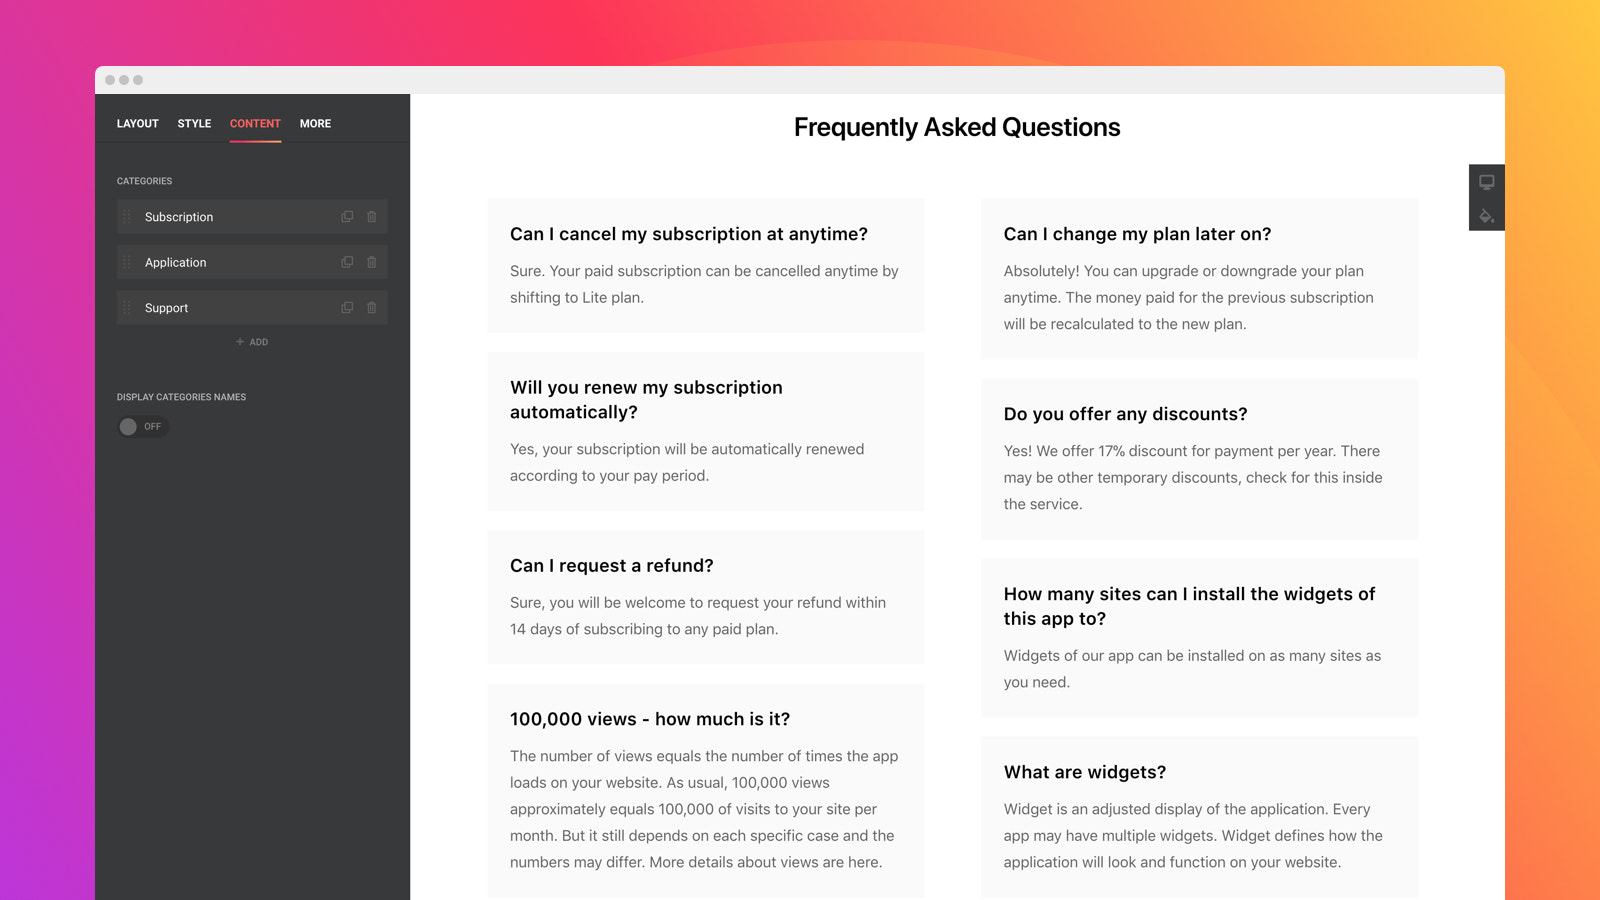 Break down your questions into several columns